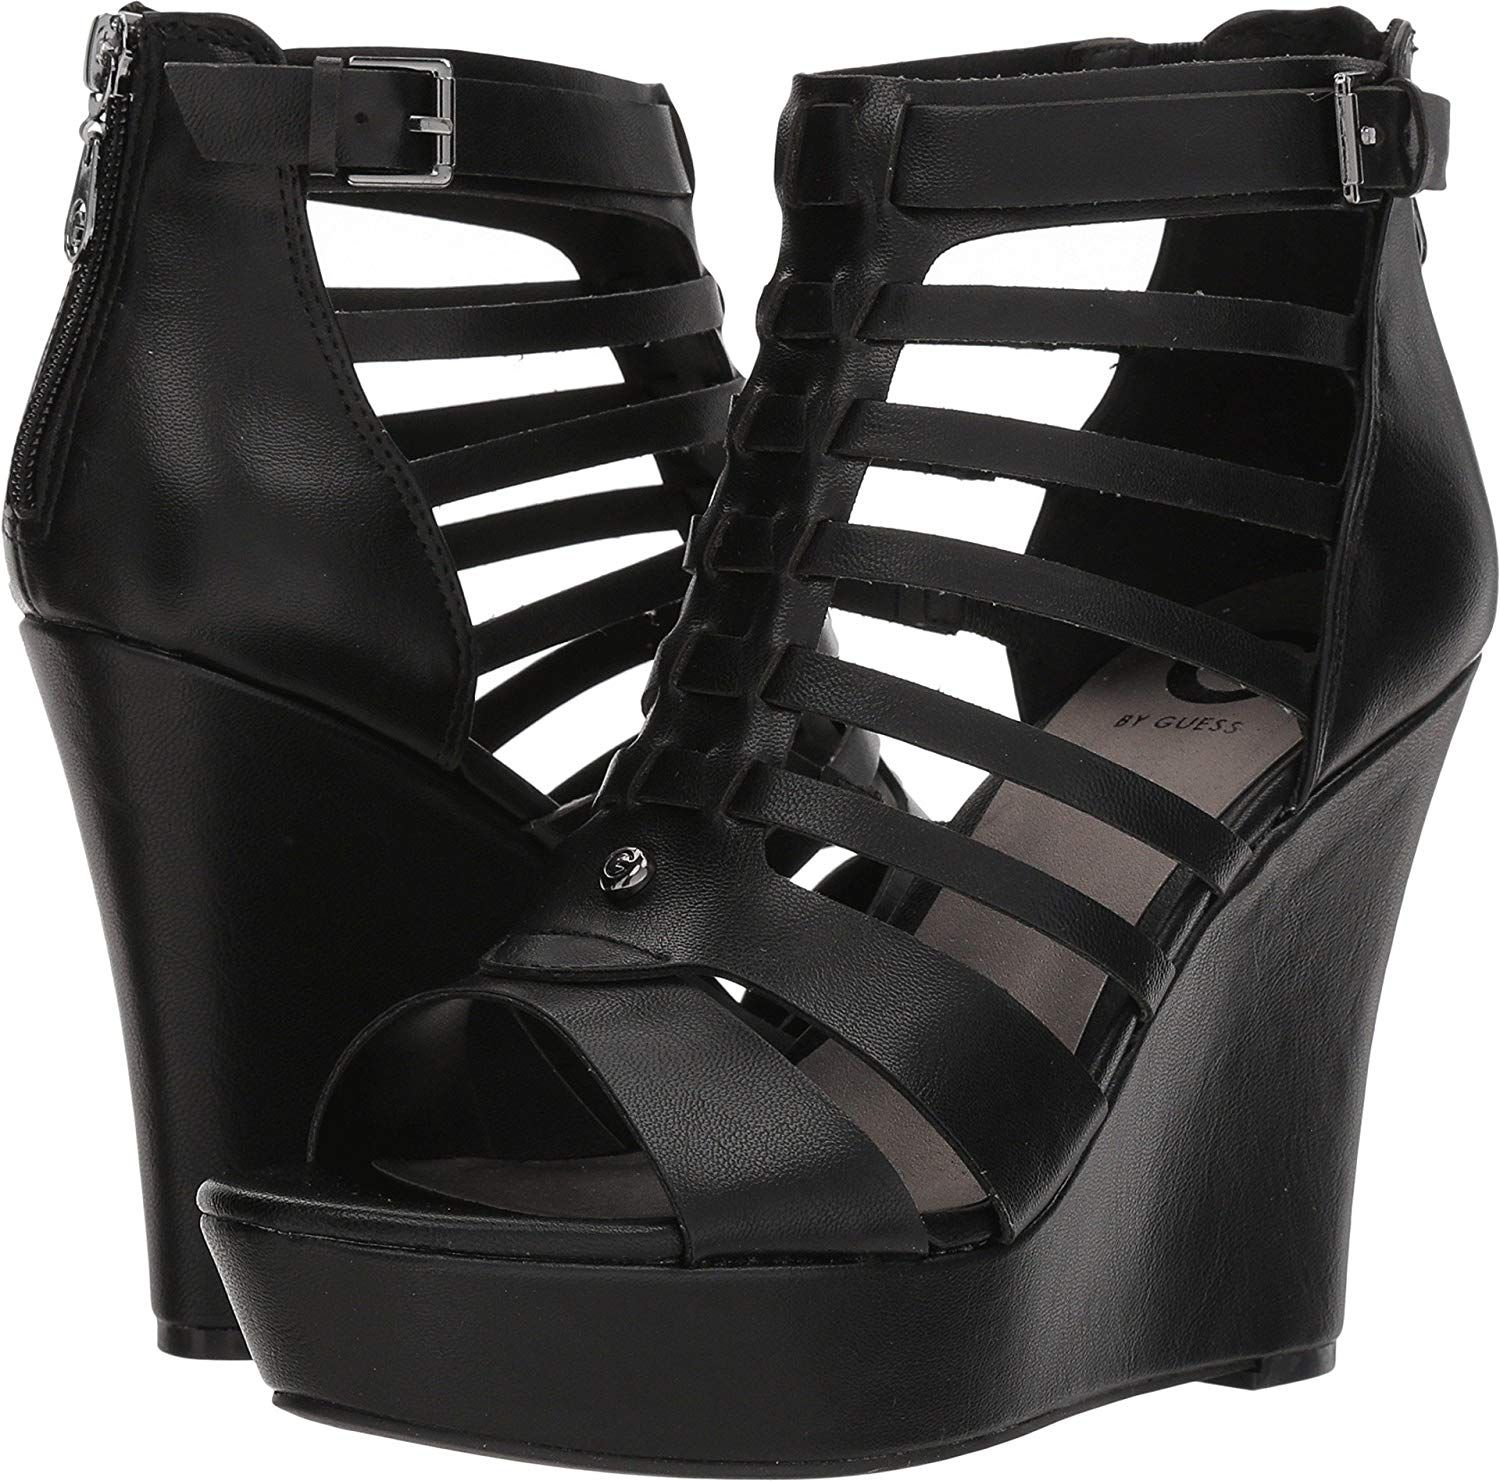 40876296872 G by GUESS Women s Dacen. Height and versatility wrapped into one with the  G by